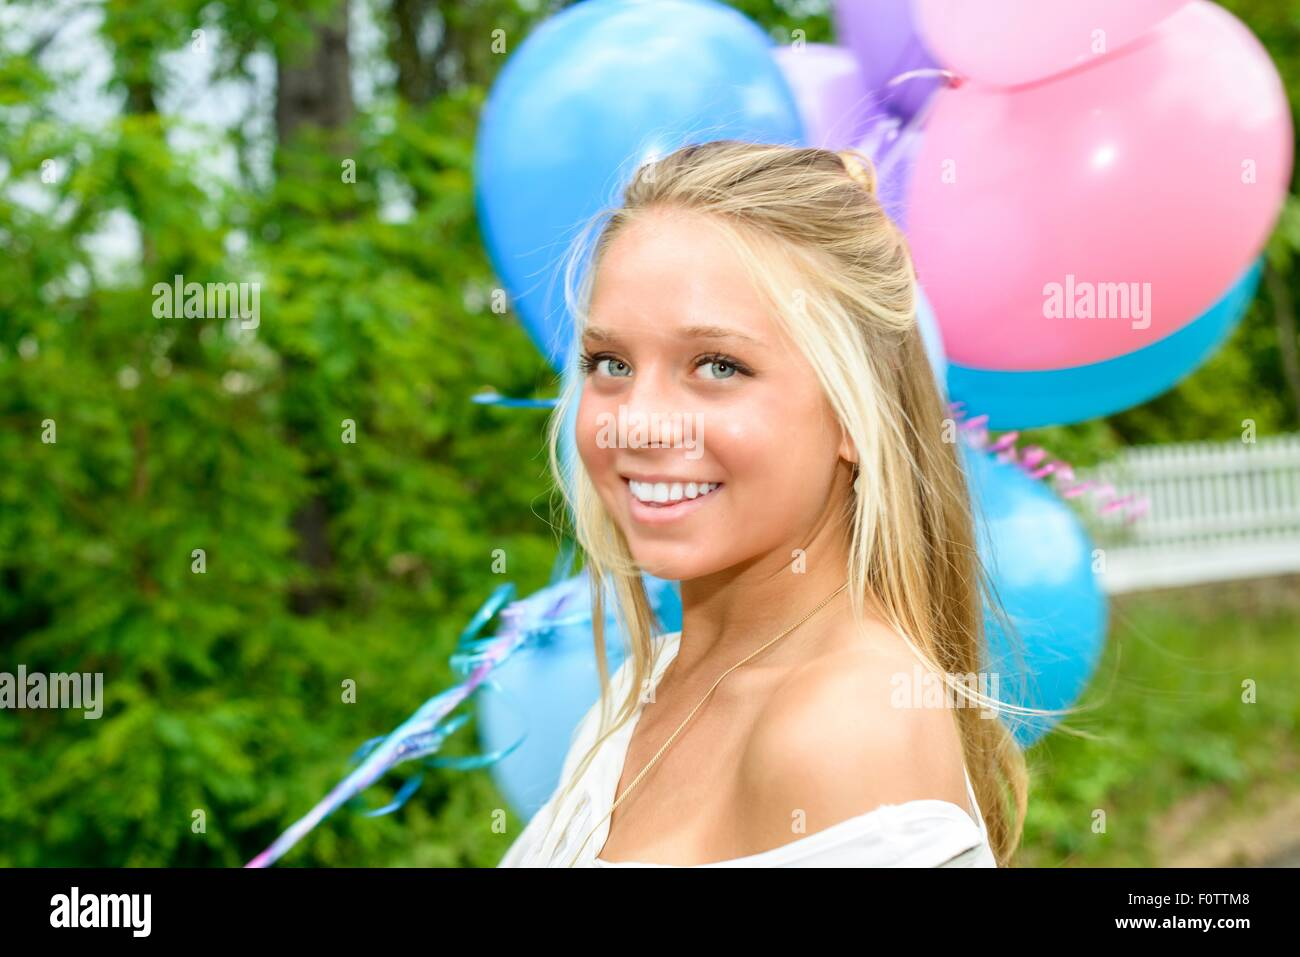 Portrait of pretty young woman with long blond hair holding bunch of balloons - Stock Image